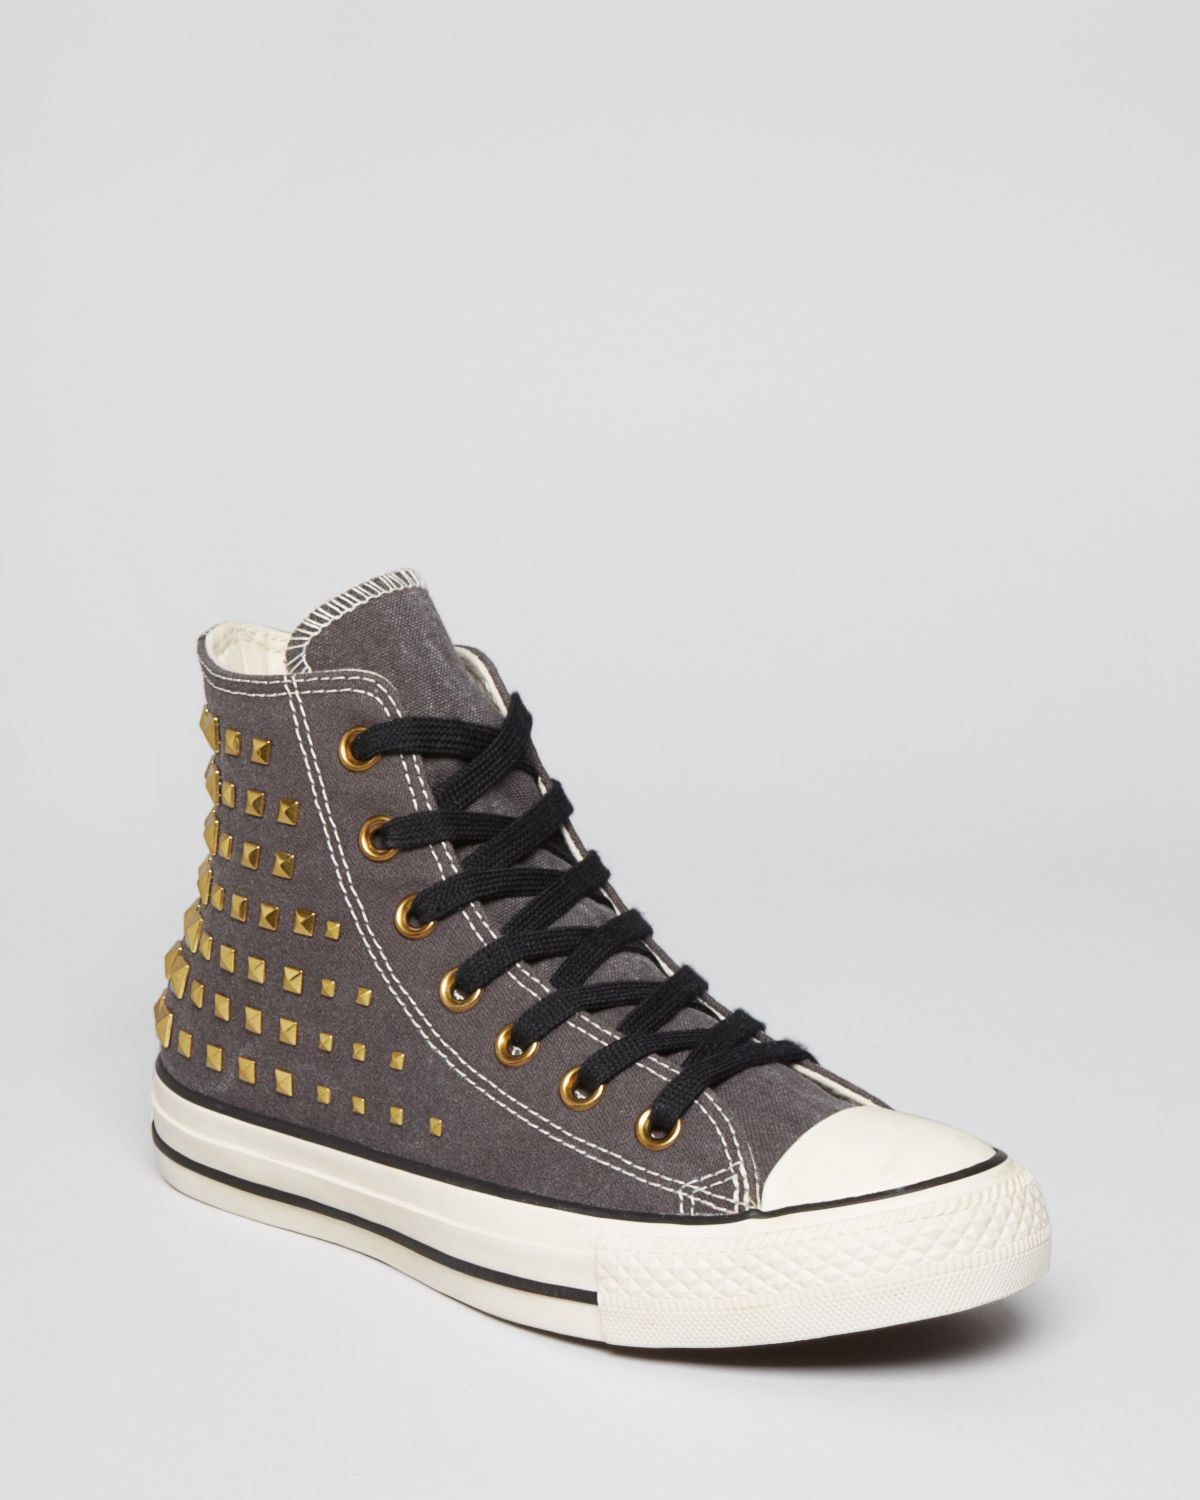 Converse lace up high top sneakers all star collar studs - Graue converse ...